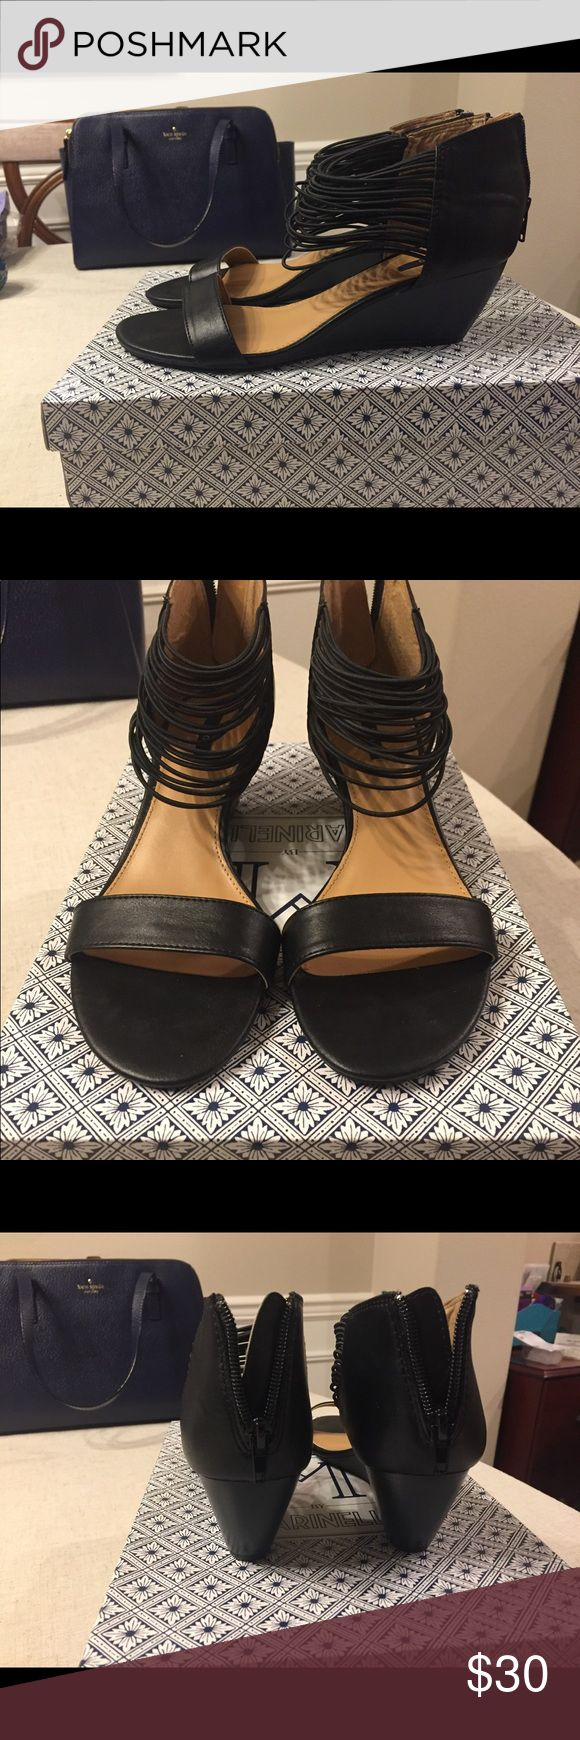 Black wedge sandals Brand new, never been worn, black wedge sandals. I don't have the original box but these are brand new. IXX Shoes Wedges